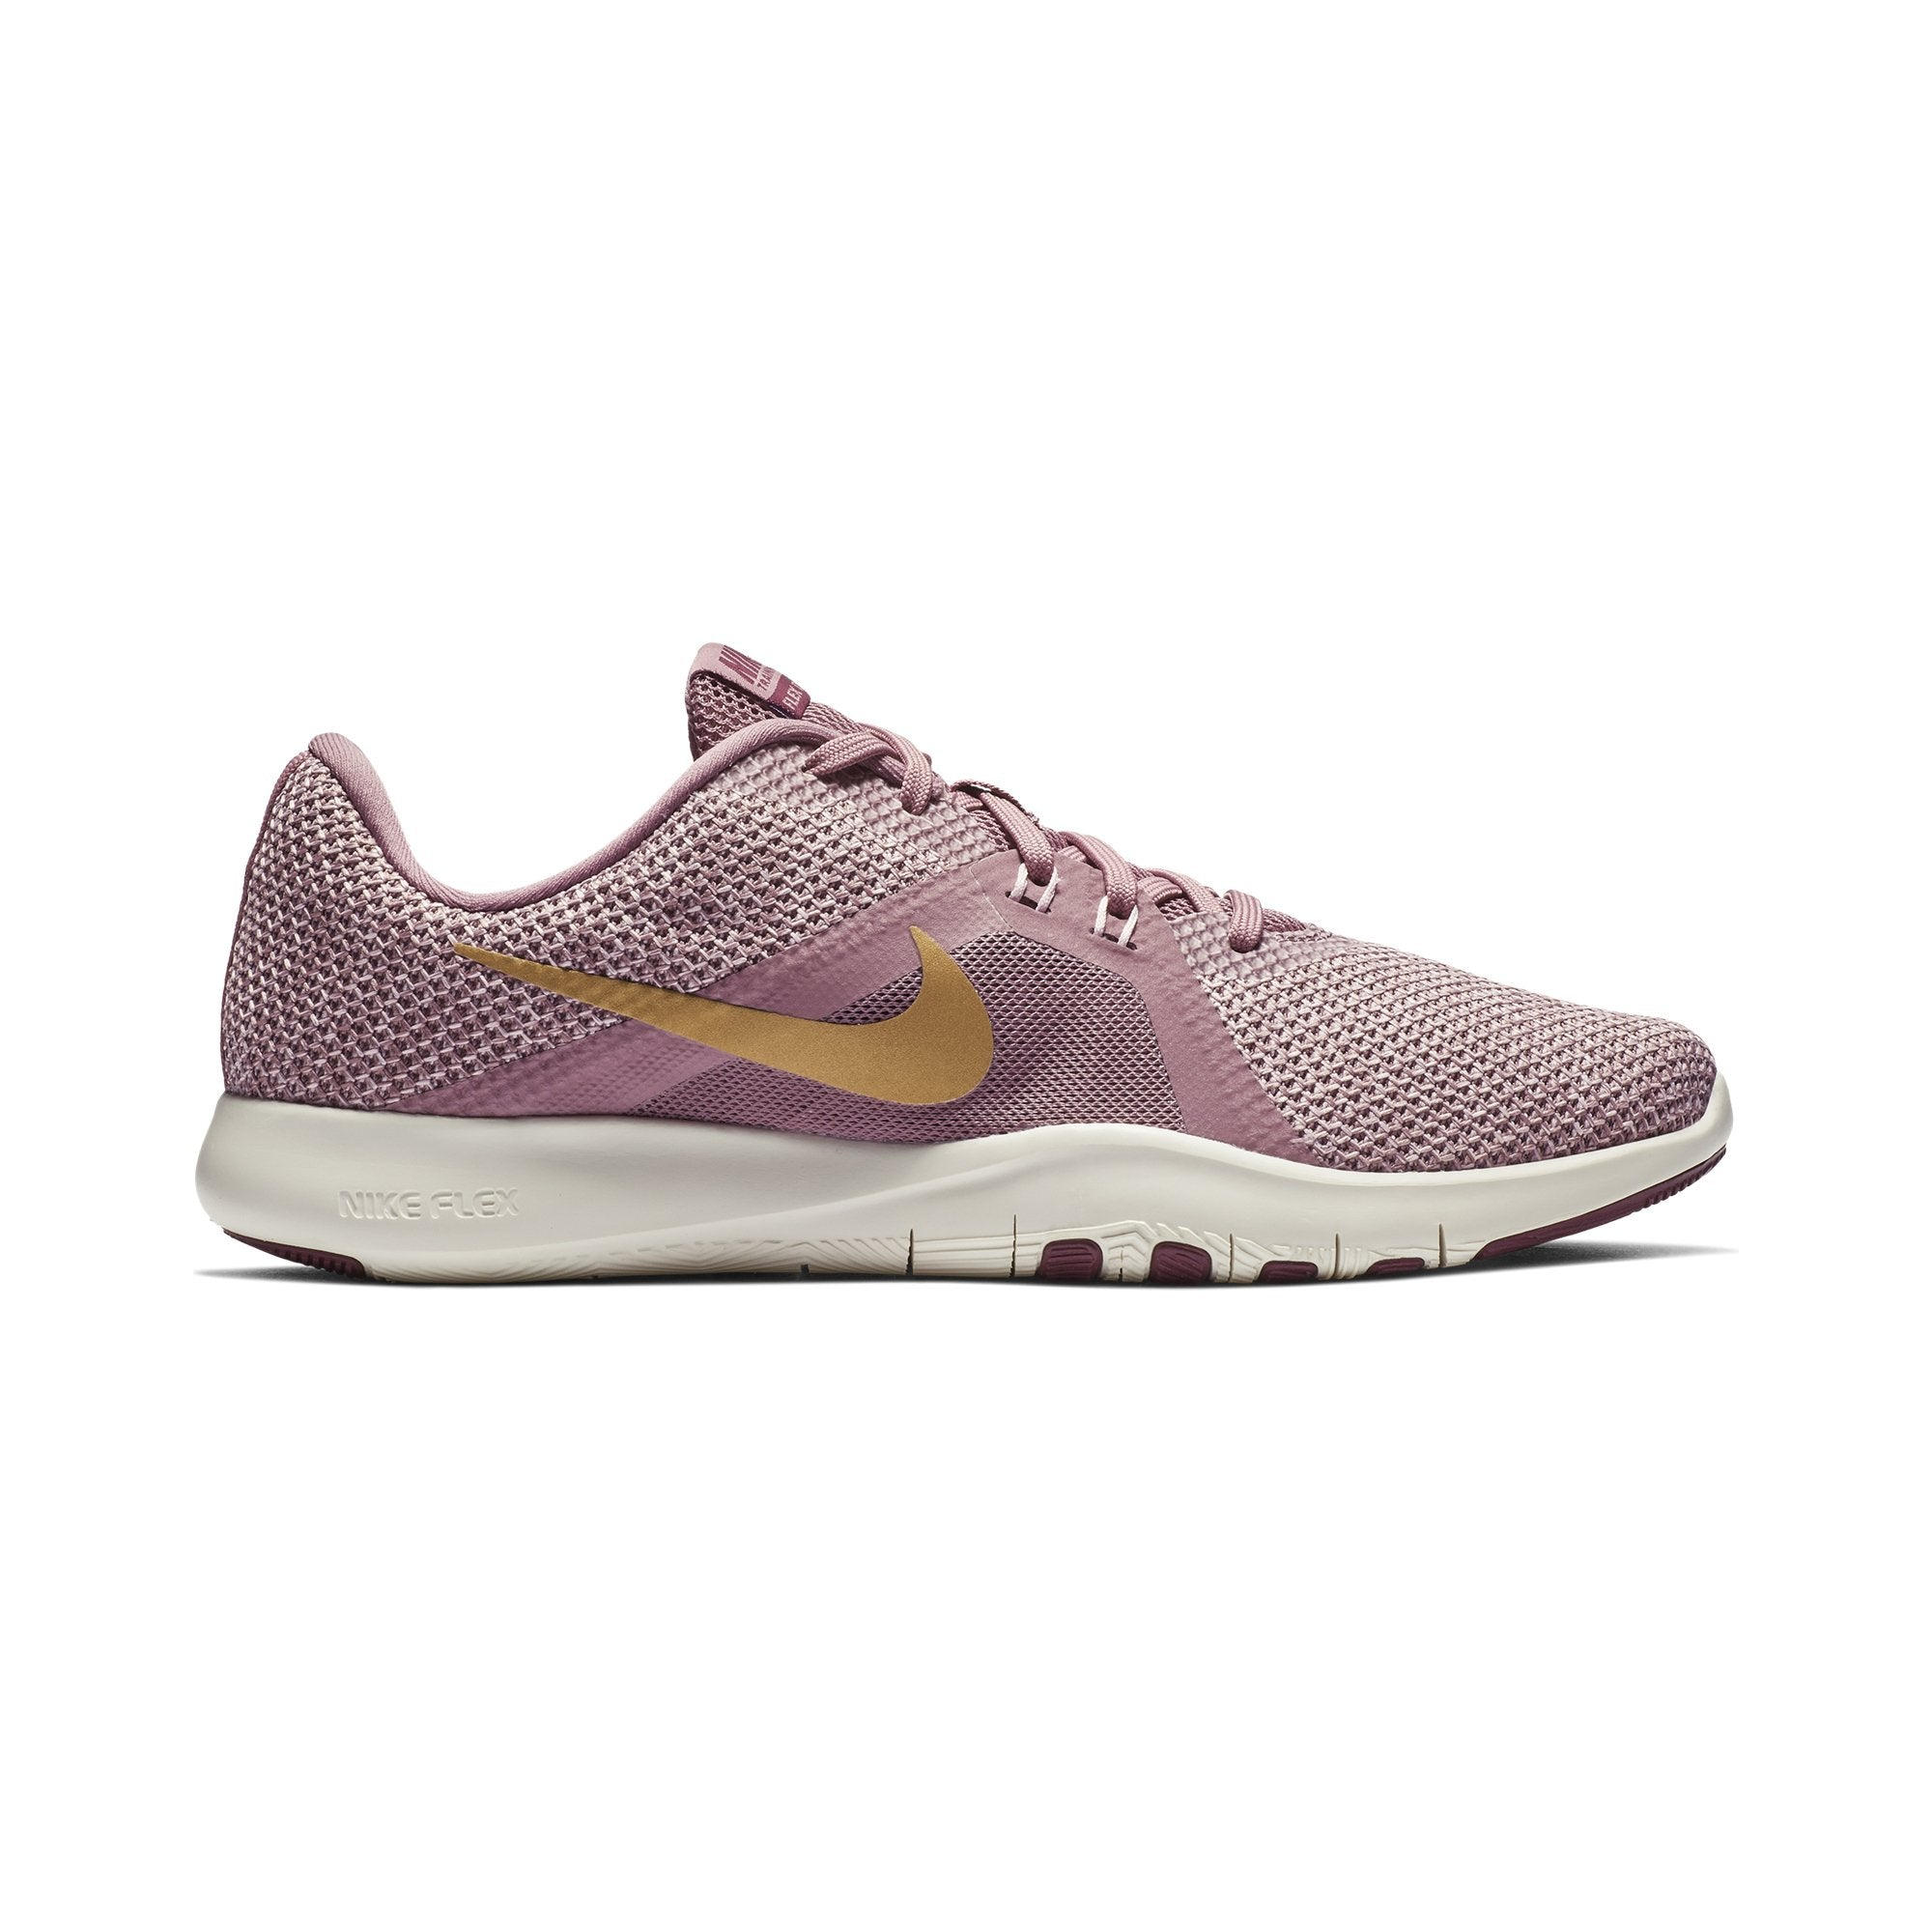 73416e1b51ddb Buy Nike Women s Flex Trainer 8 Amp Training Shoes